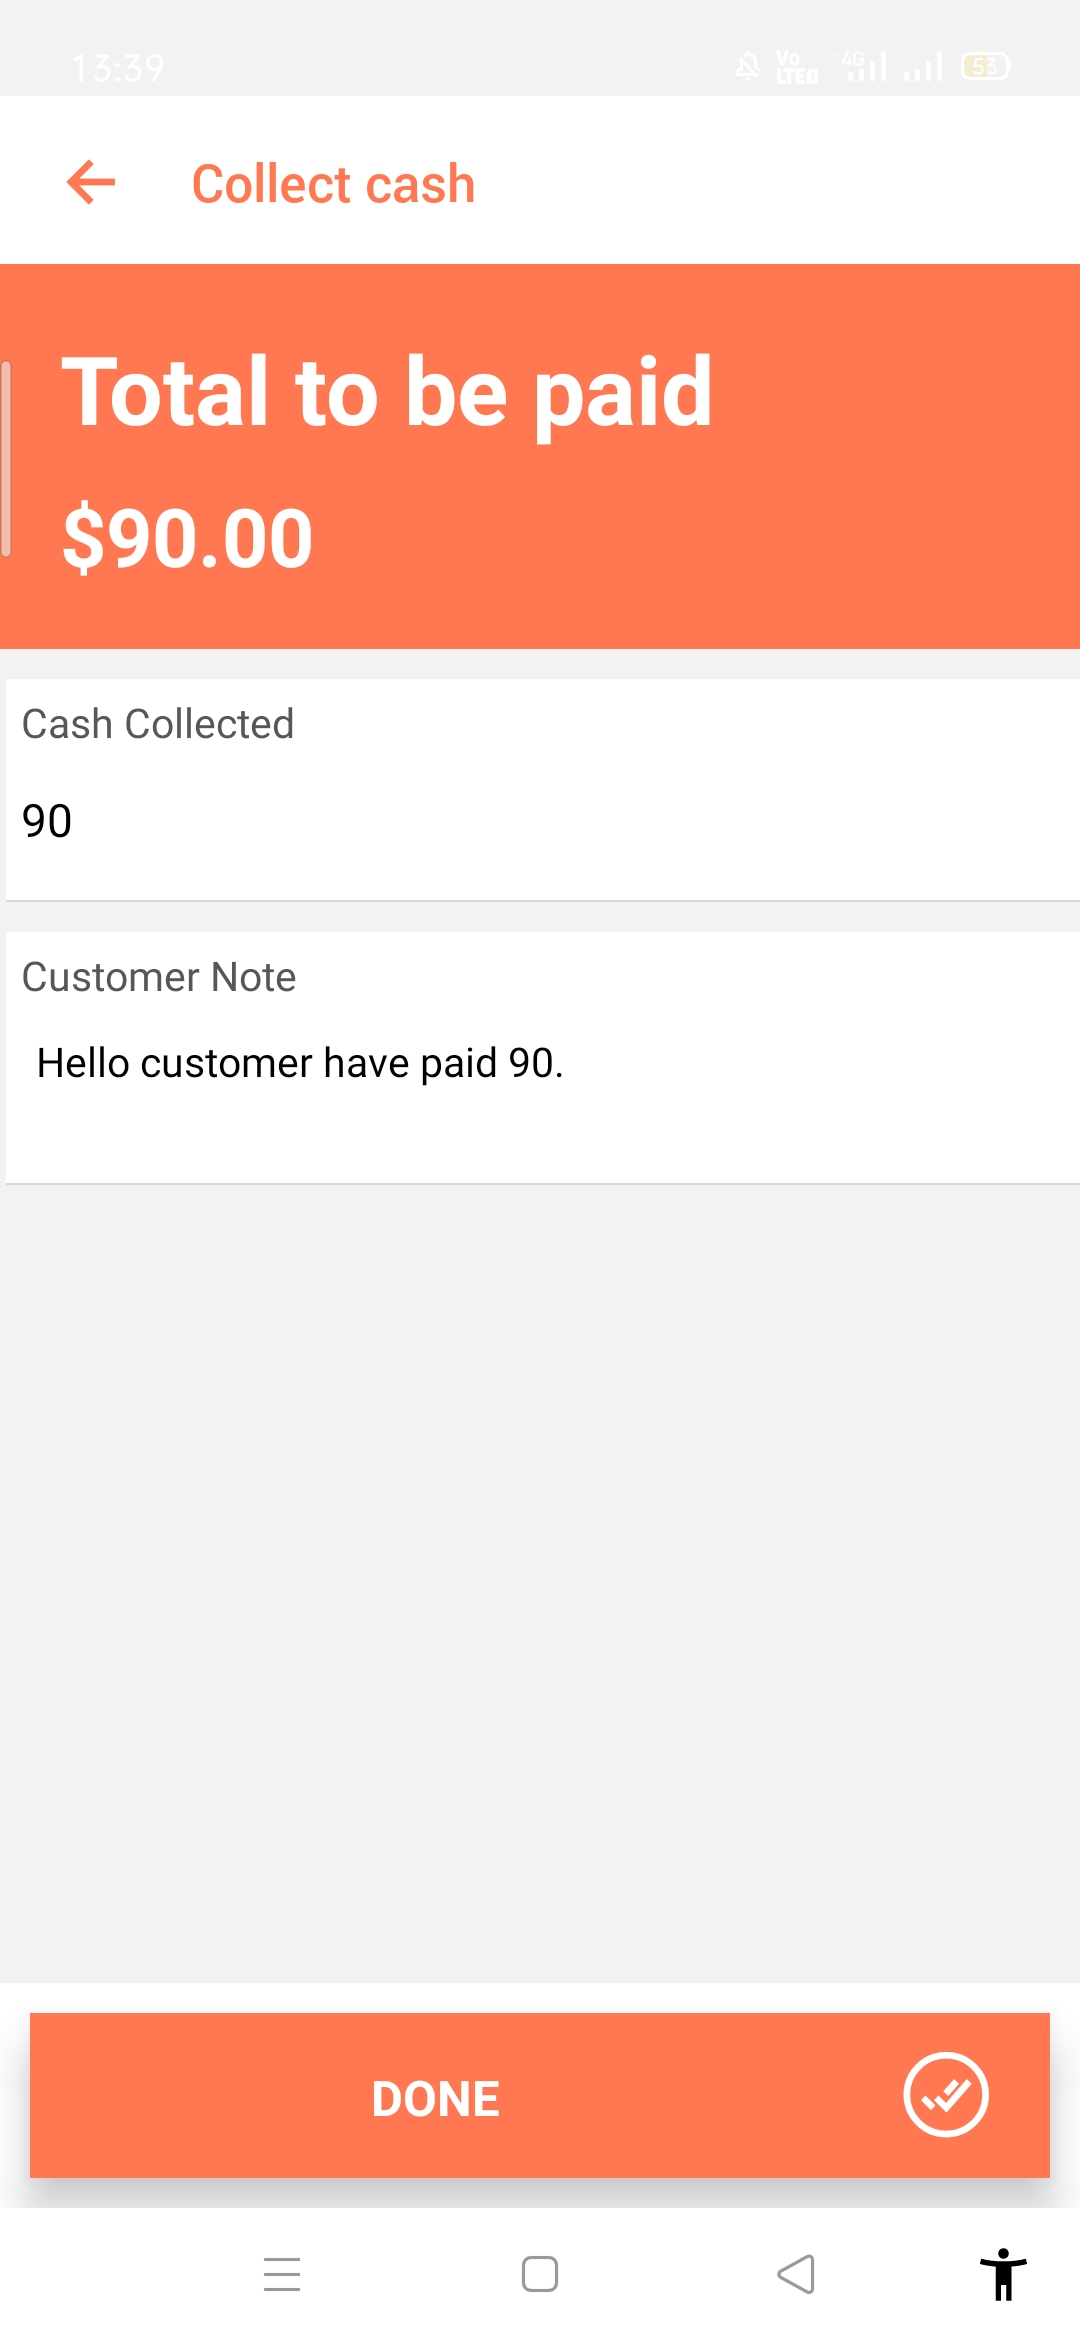 collect-cash-page